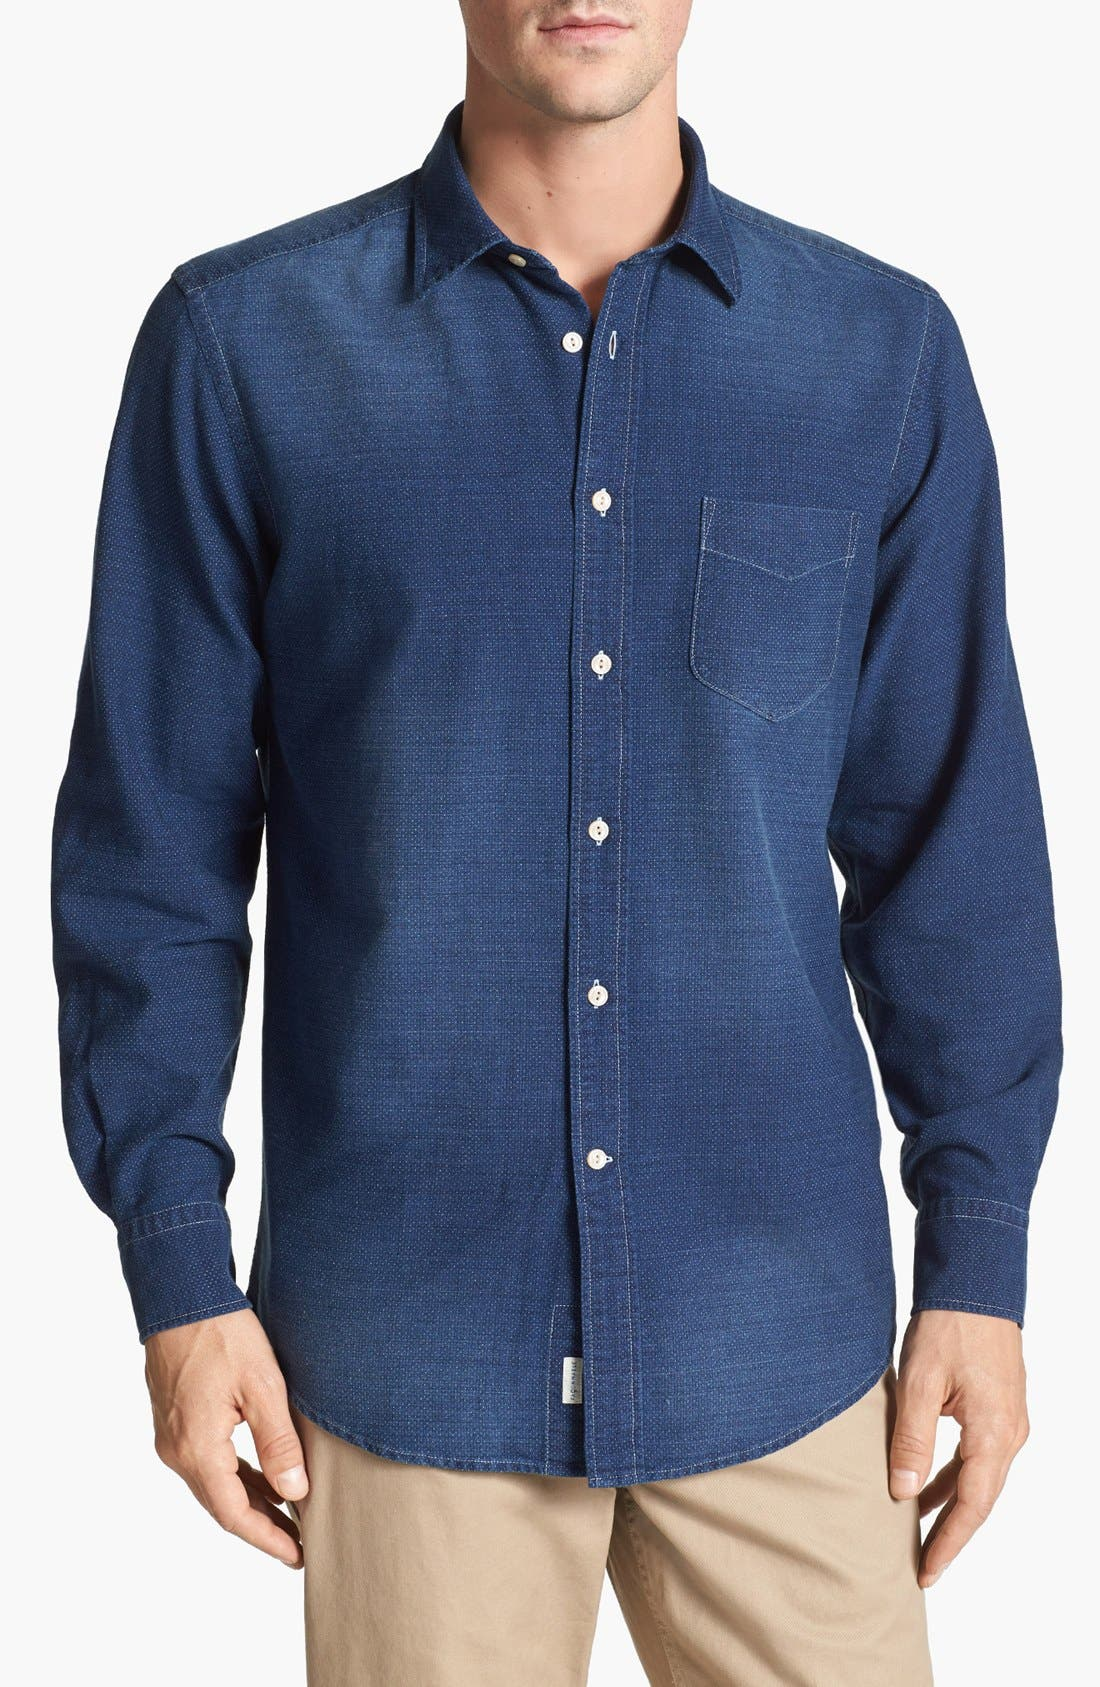 Alternate Image 1 Selected - Façonnable Club Fit Dobby Sport Shirt